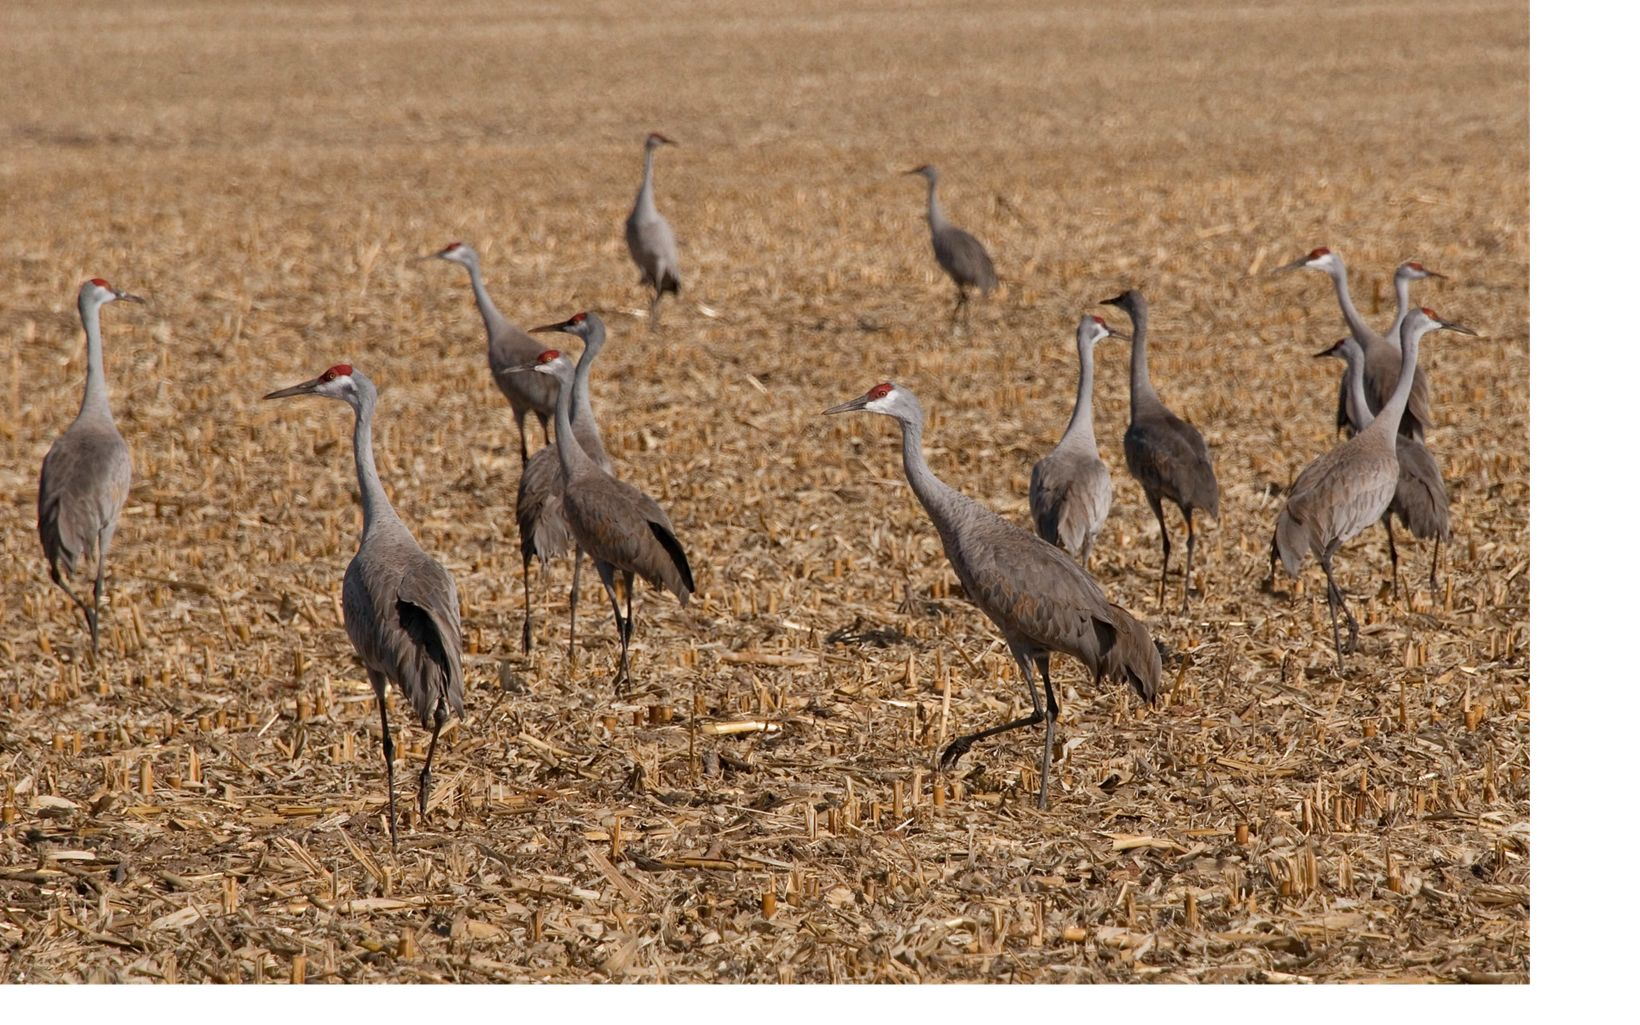 in a corn field during their annual migration stop along the Platte River in south central Nebraska.